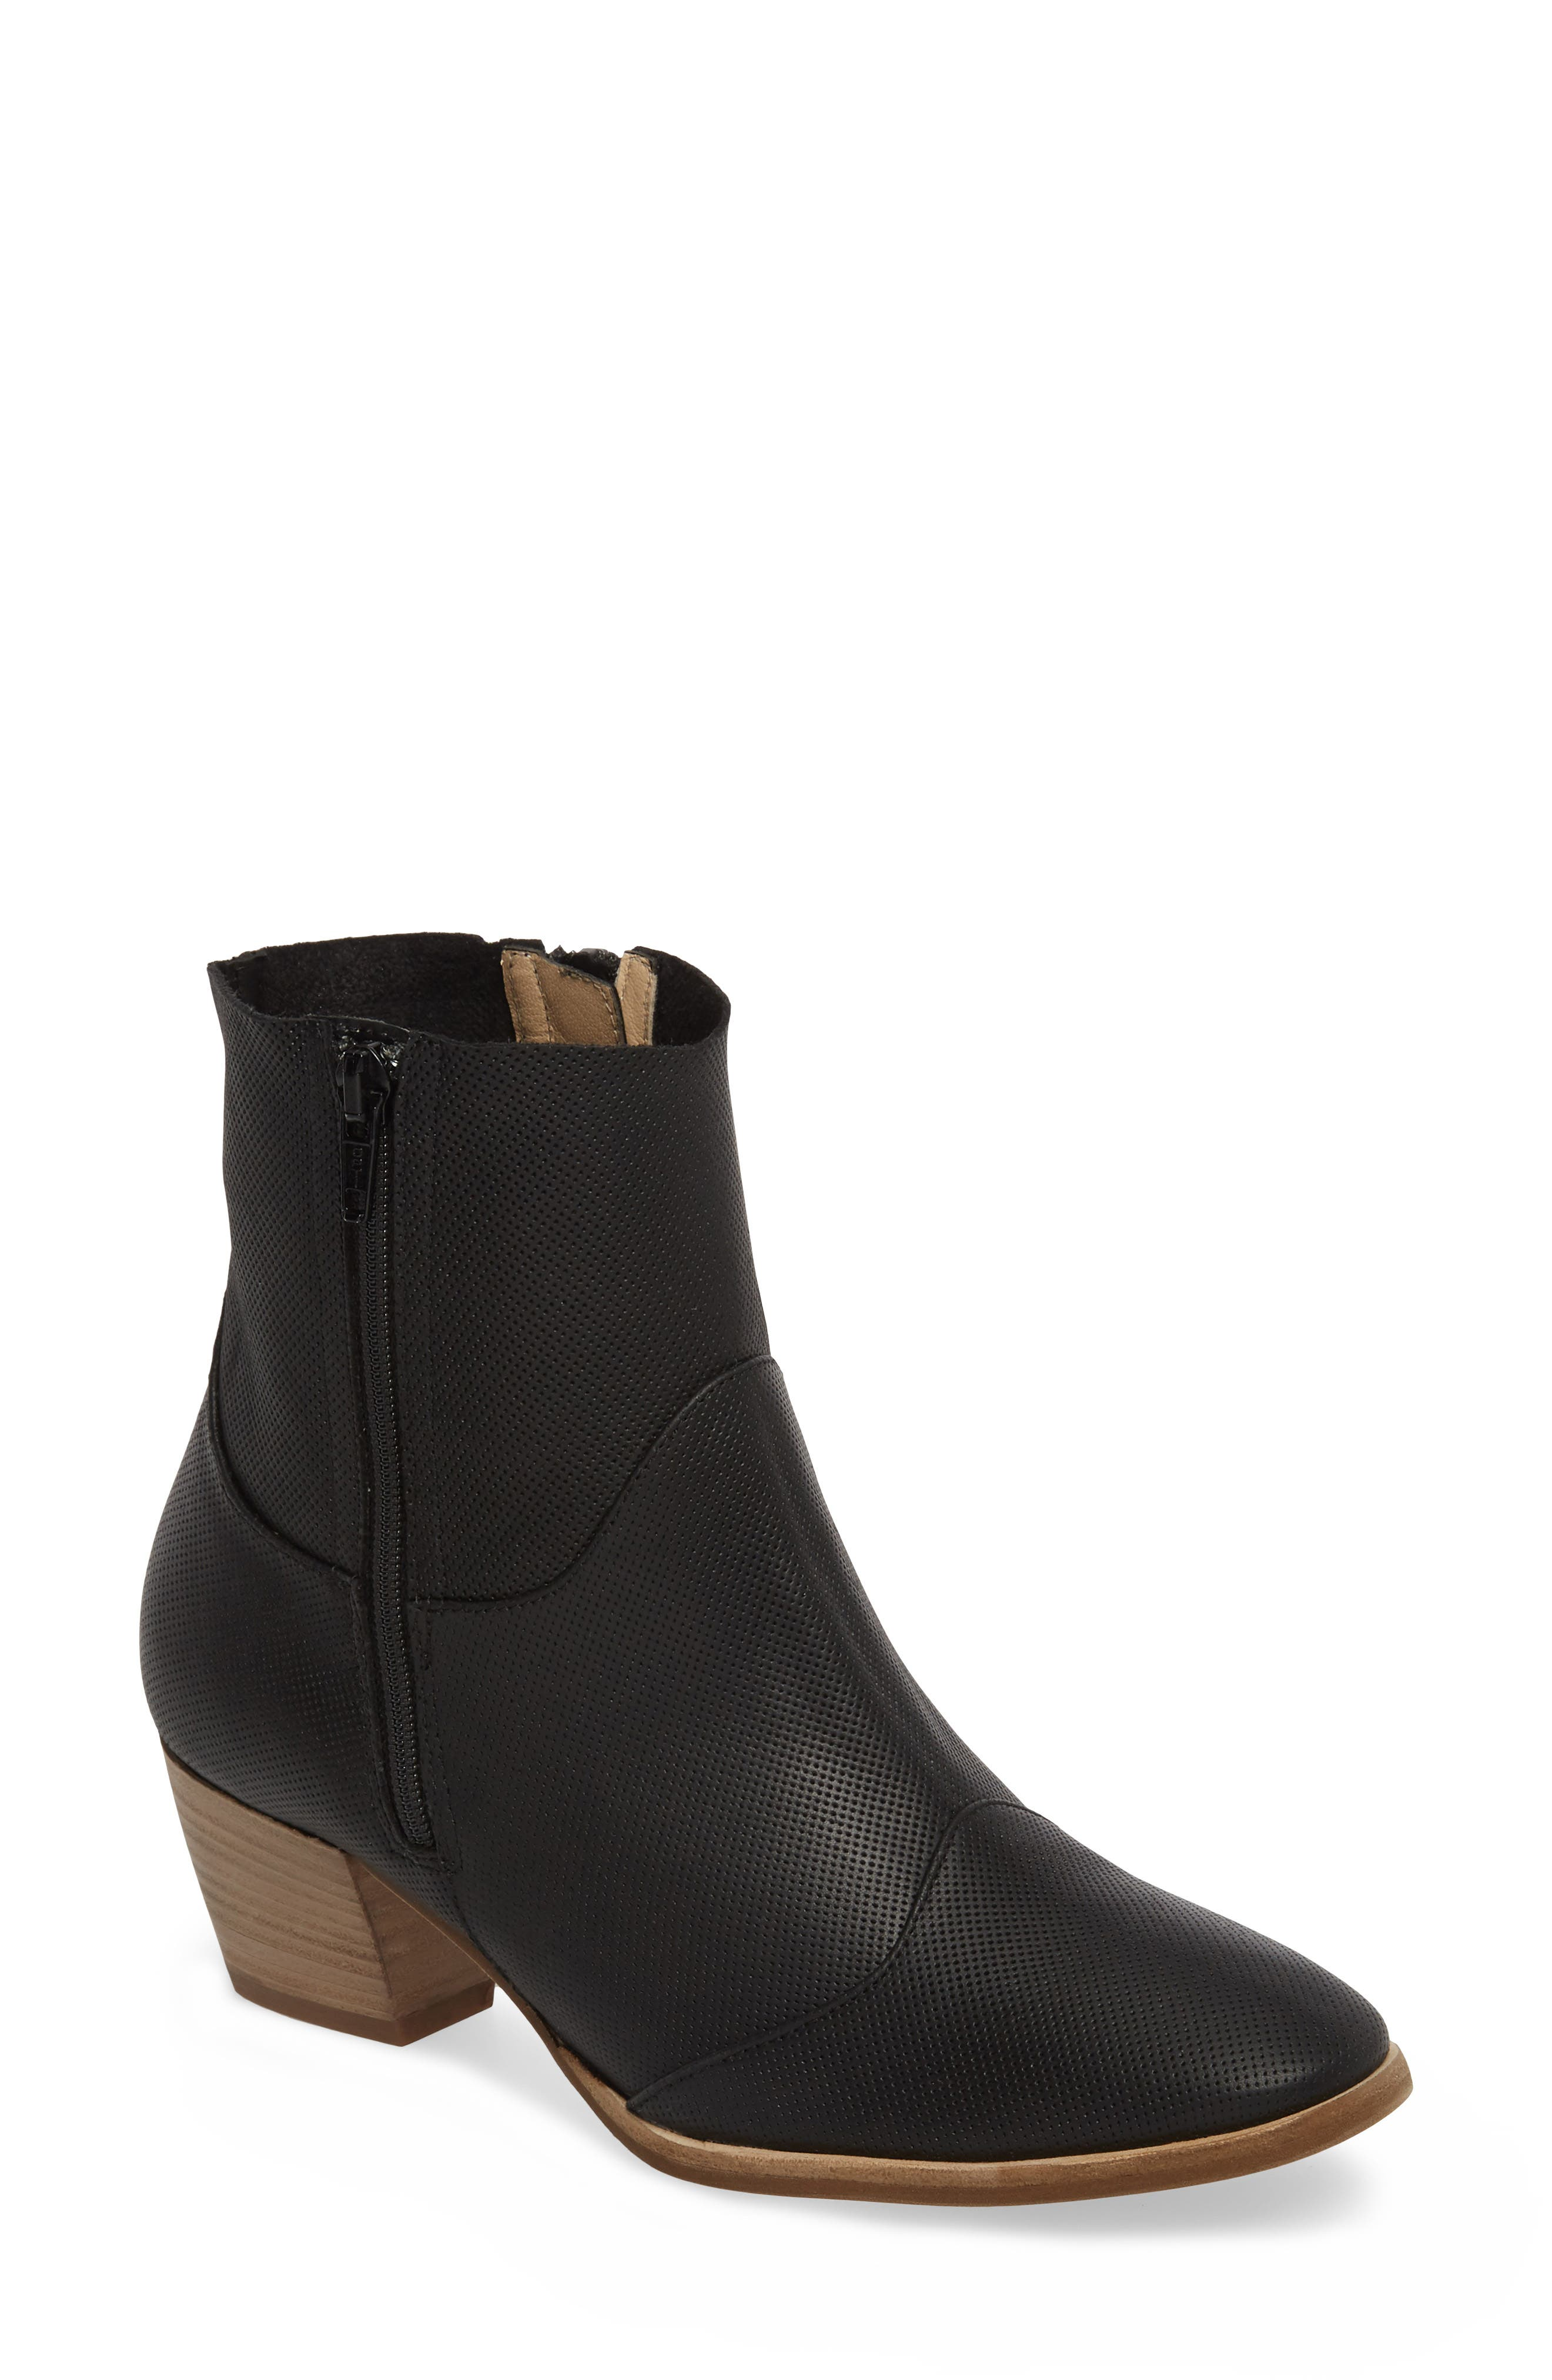 Robin Bootie,                         Main,                         color, BLACK LEATHER